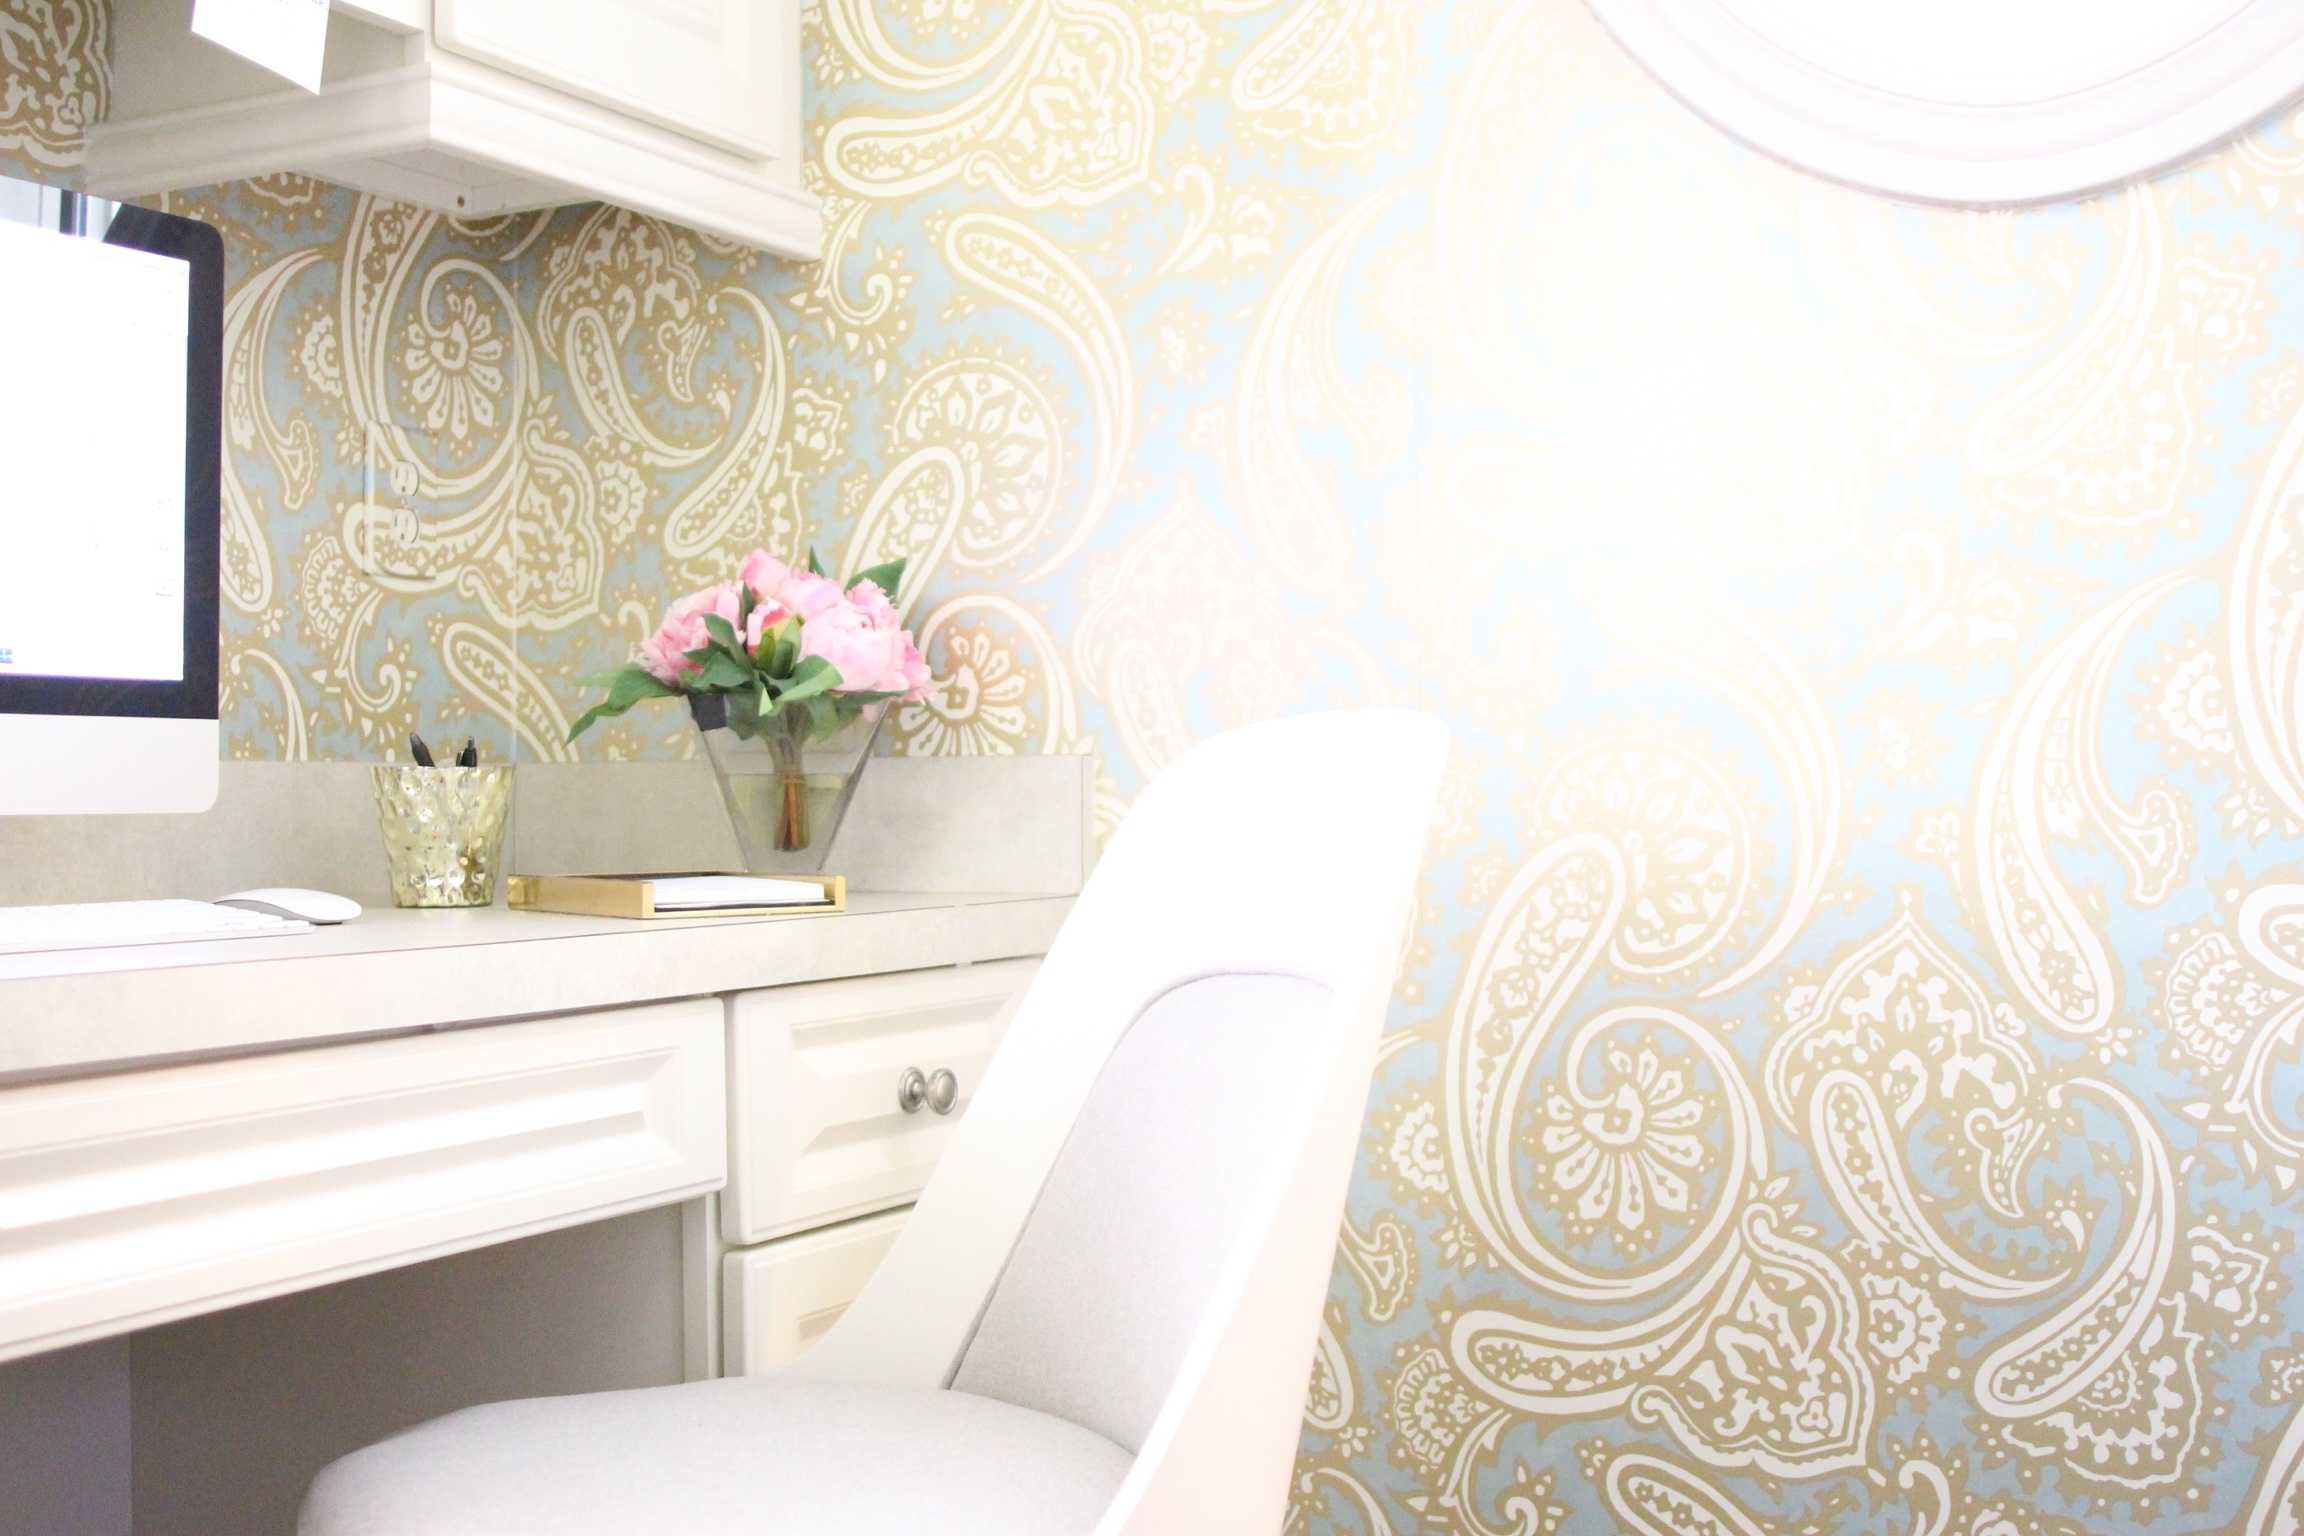 Peel And Stick Wallpaper Does It Work Home Decor Grey Wallpaper Peel And Stick Wallpaper